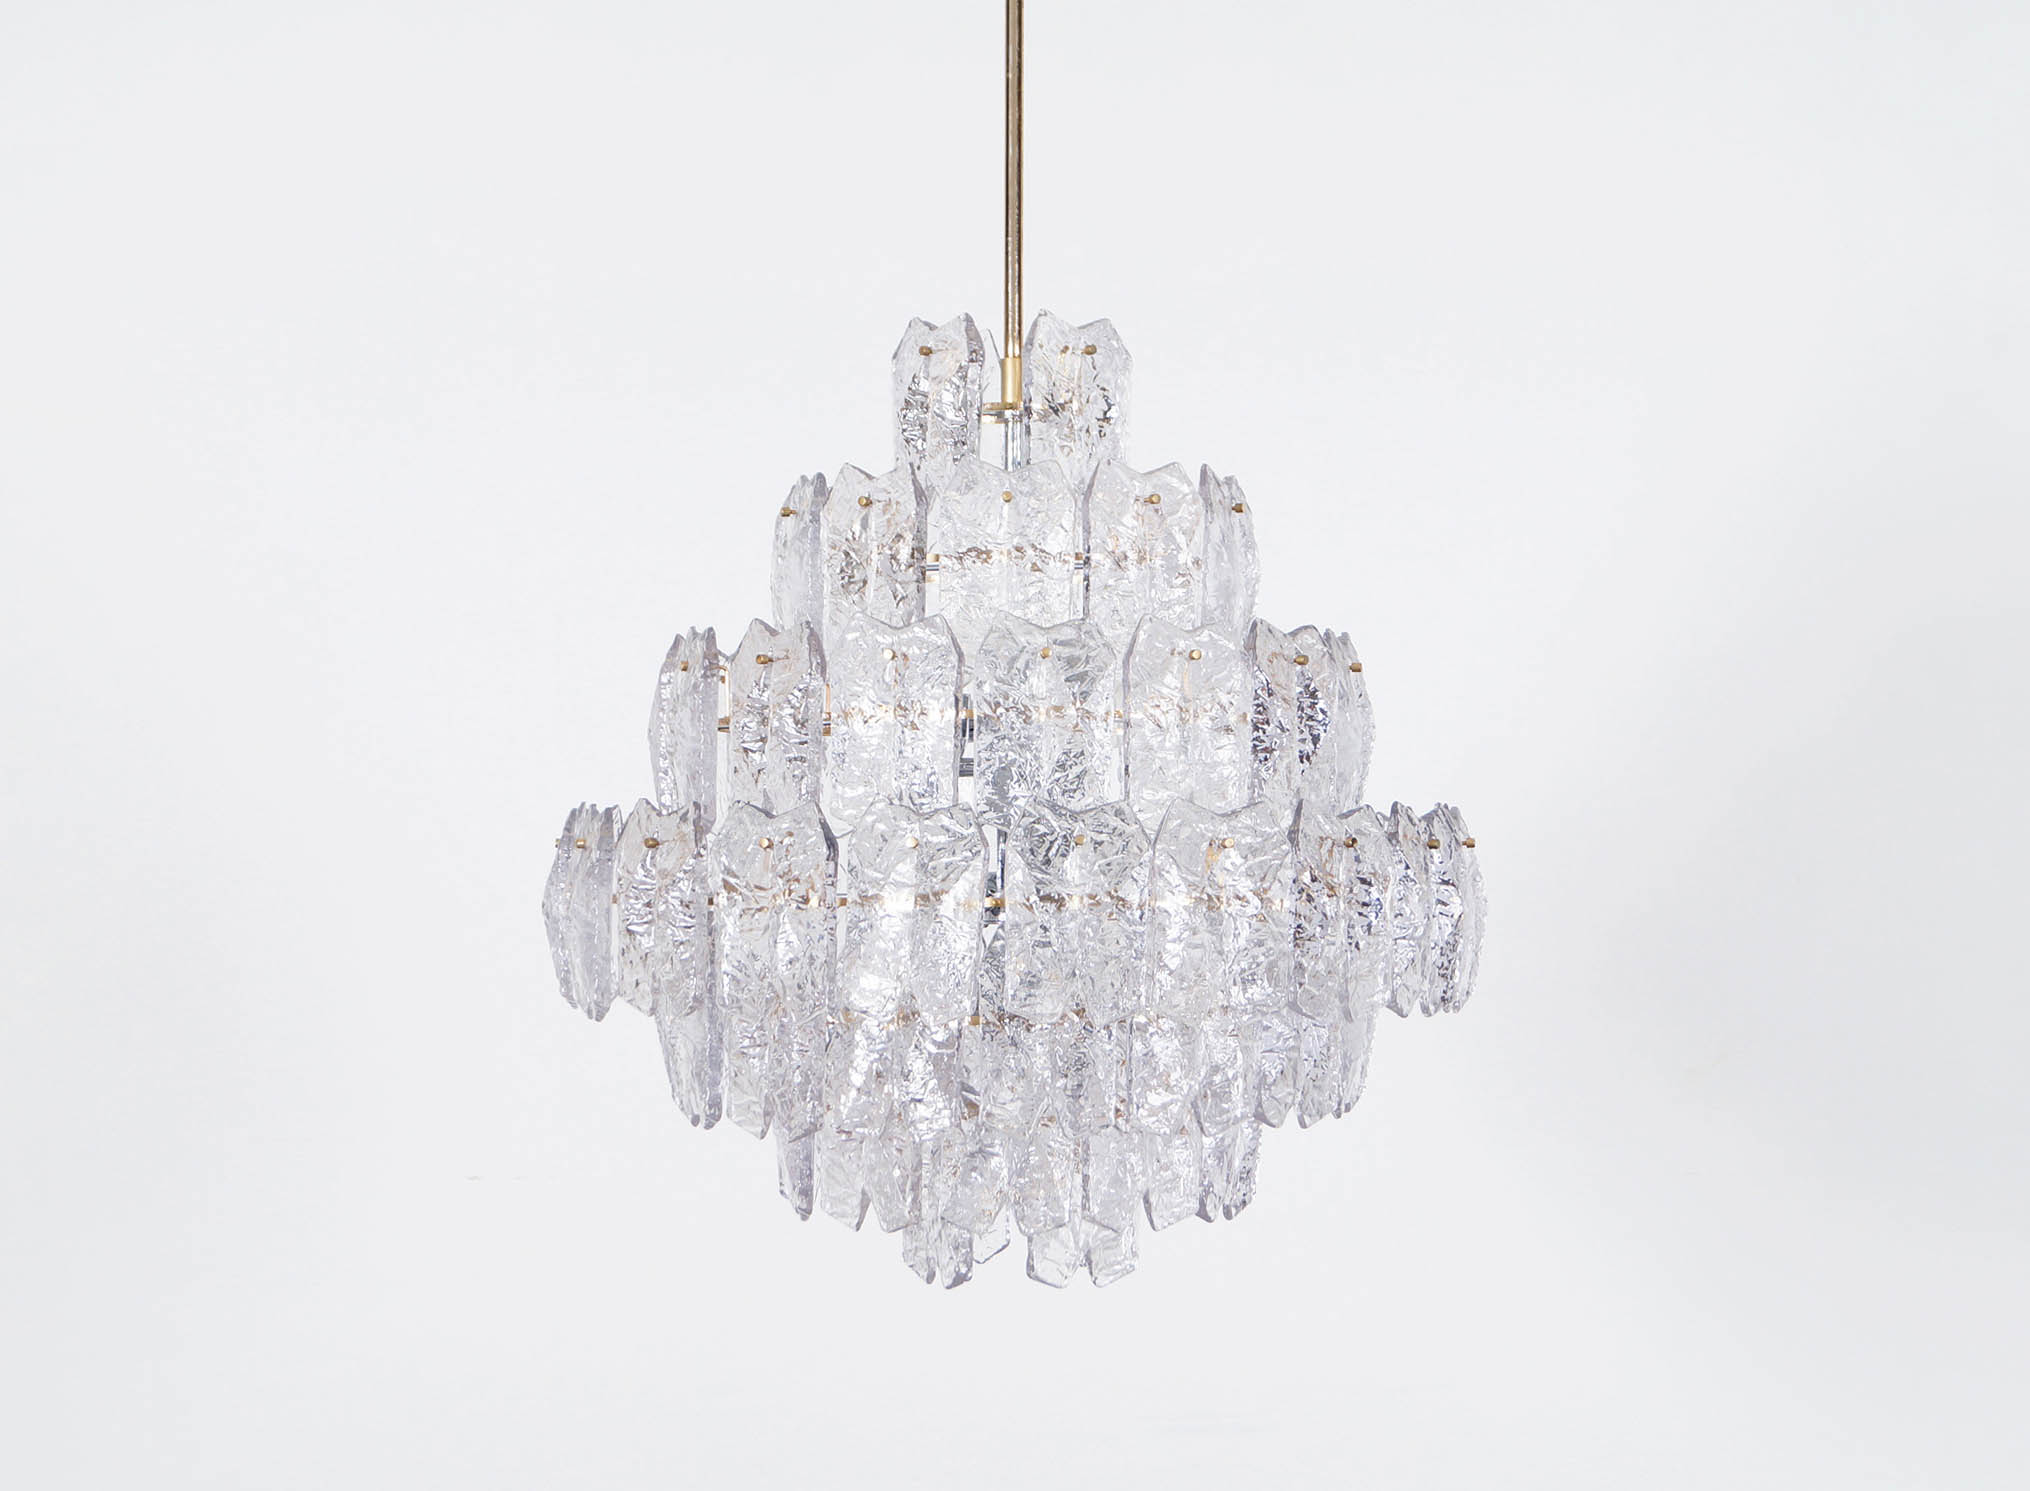 Exceptional Ice Glass Chandelier Attributed to Kalmar